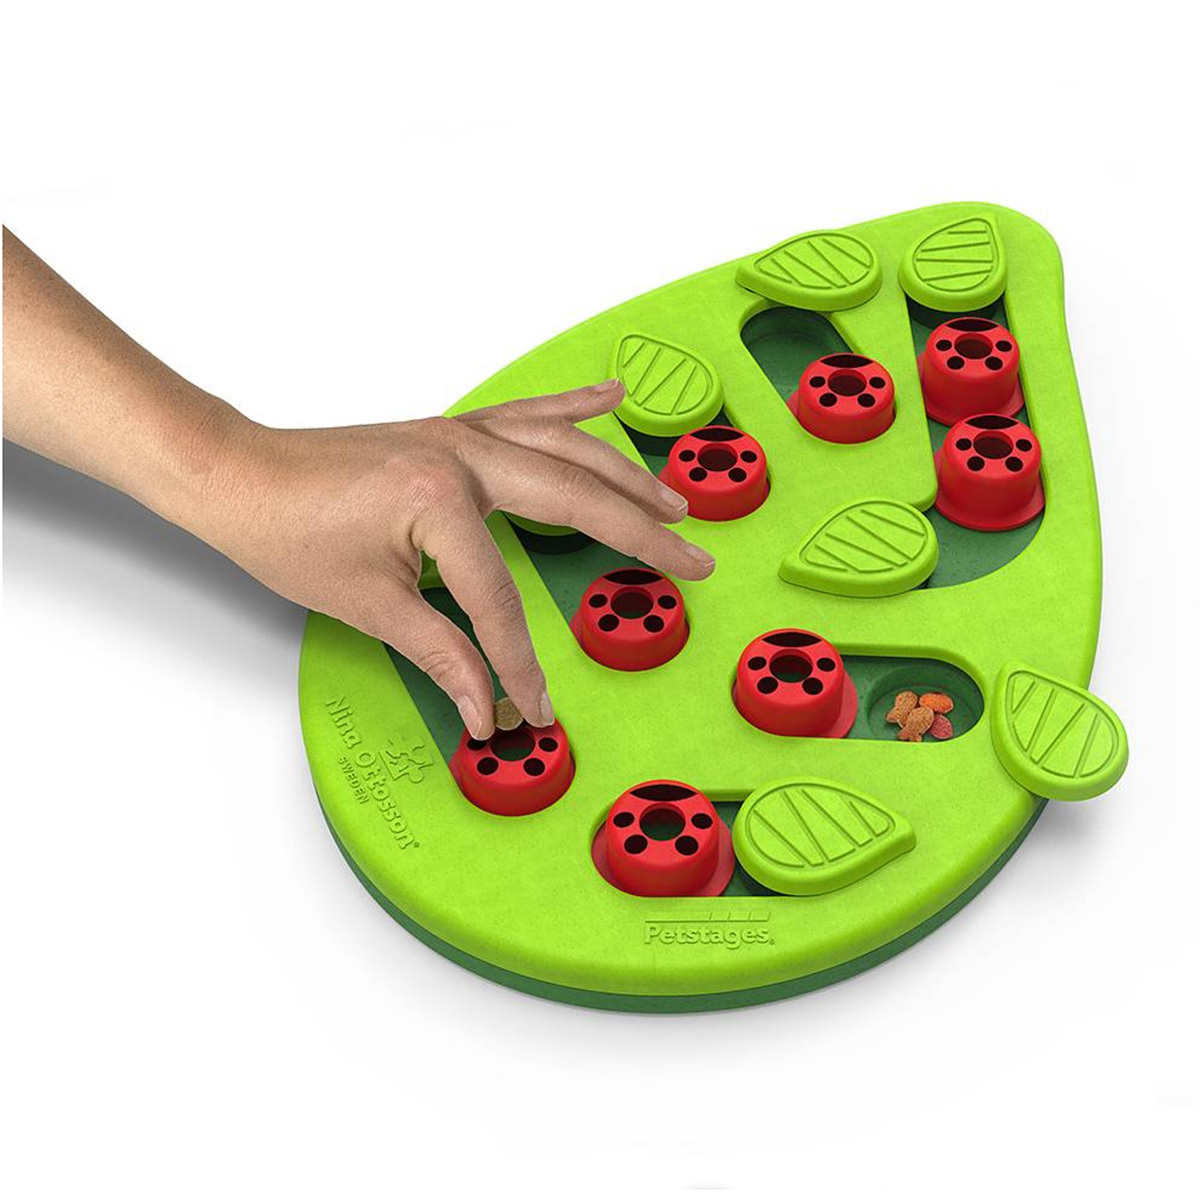 Nina Ottosson Puzzle & Play Buggin Out Treat Dispensing Cat Toy - Green image 2